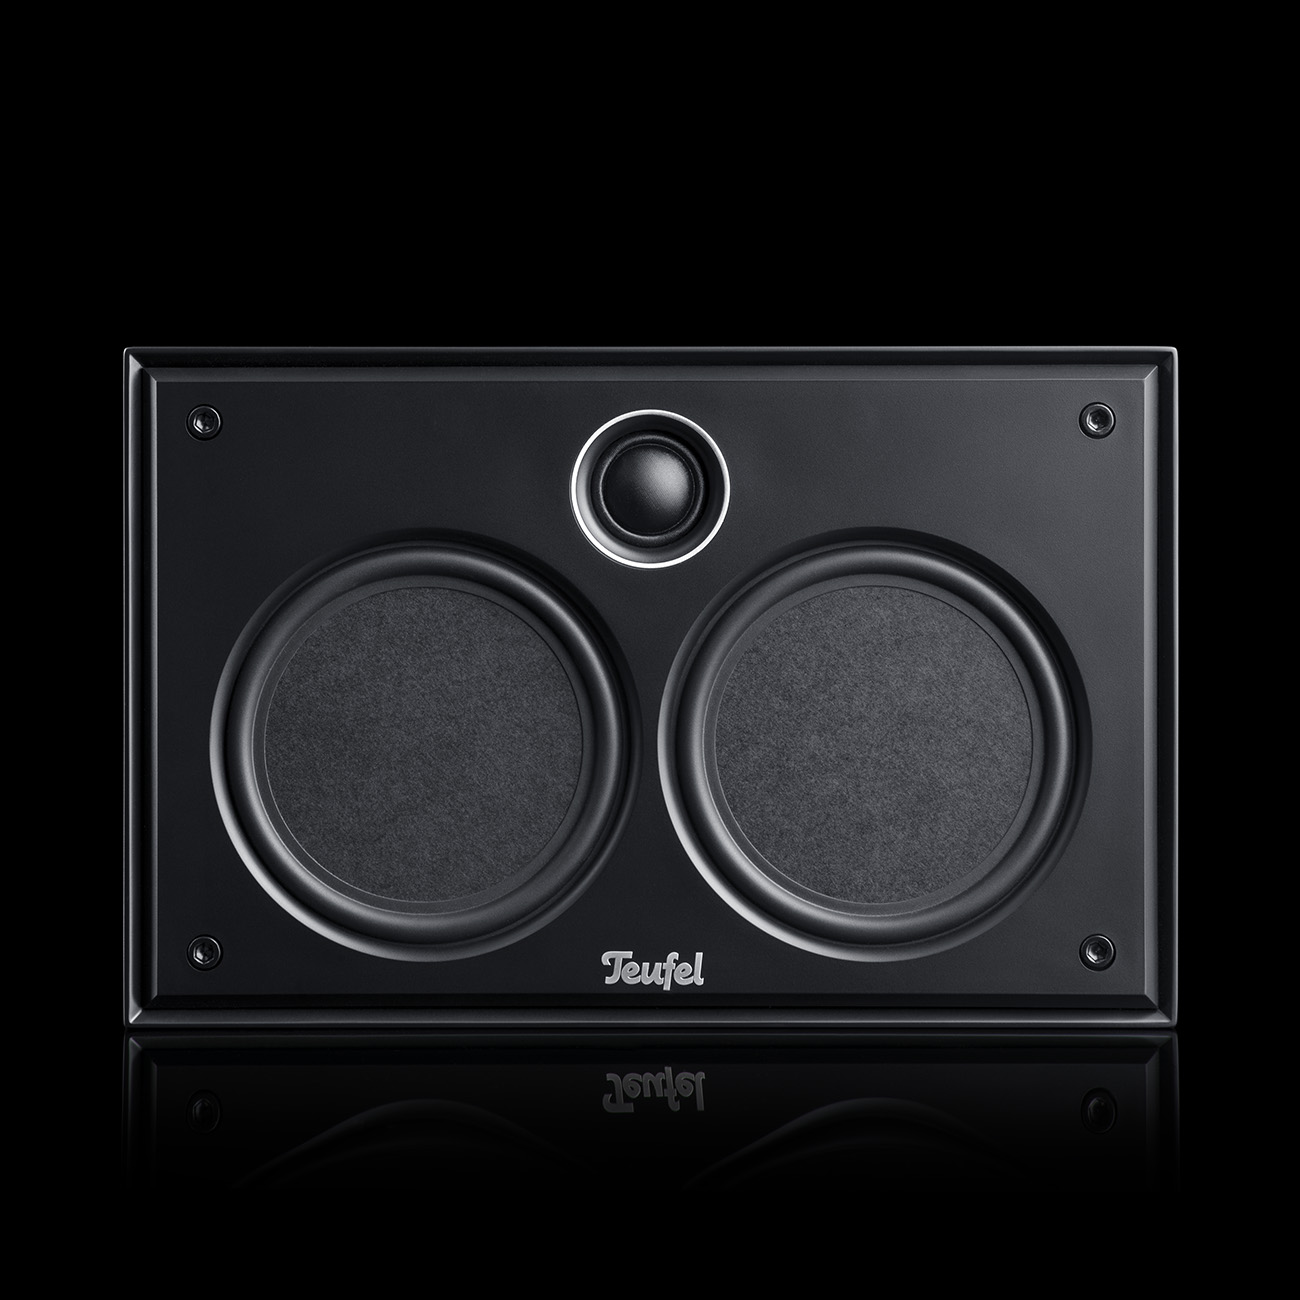 system-6-thx-select-fcr-front-straight-black-on-black-1300x1300x72.jpg